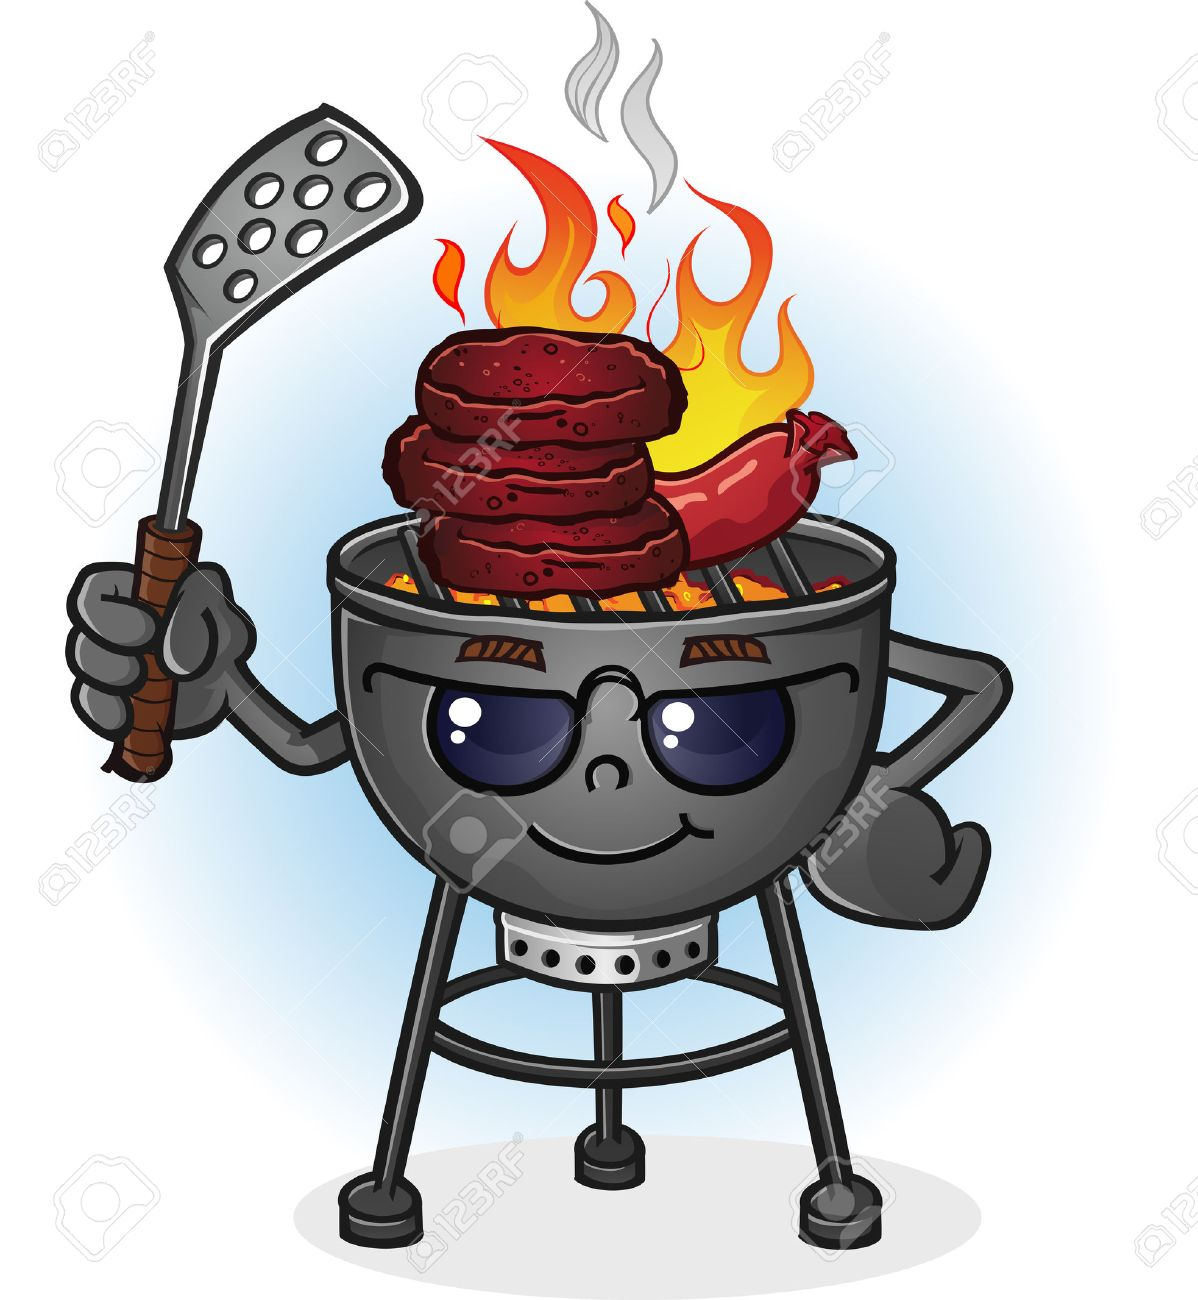 barbecue grill cartoon character with attitude royalty free cliparts